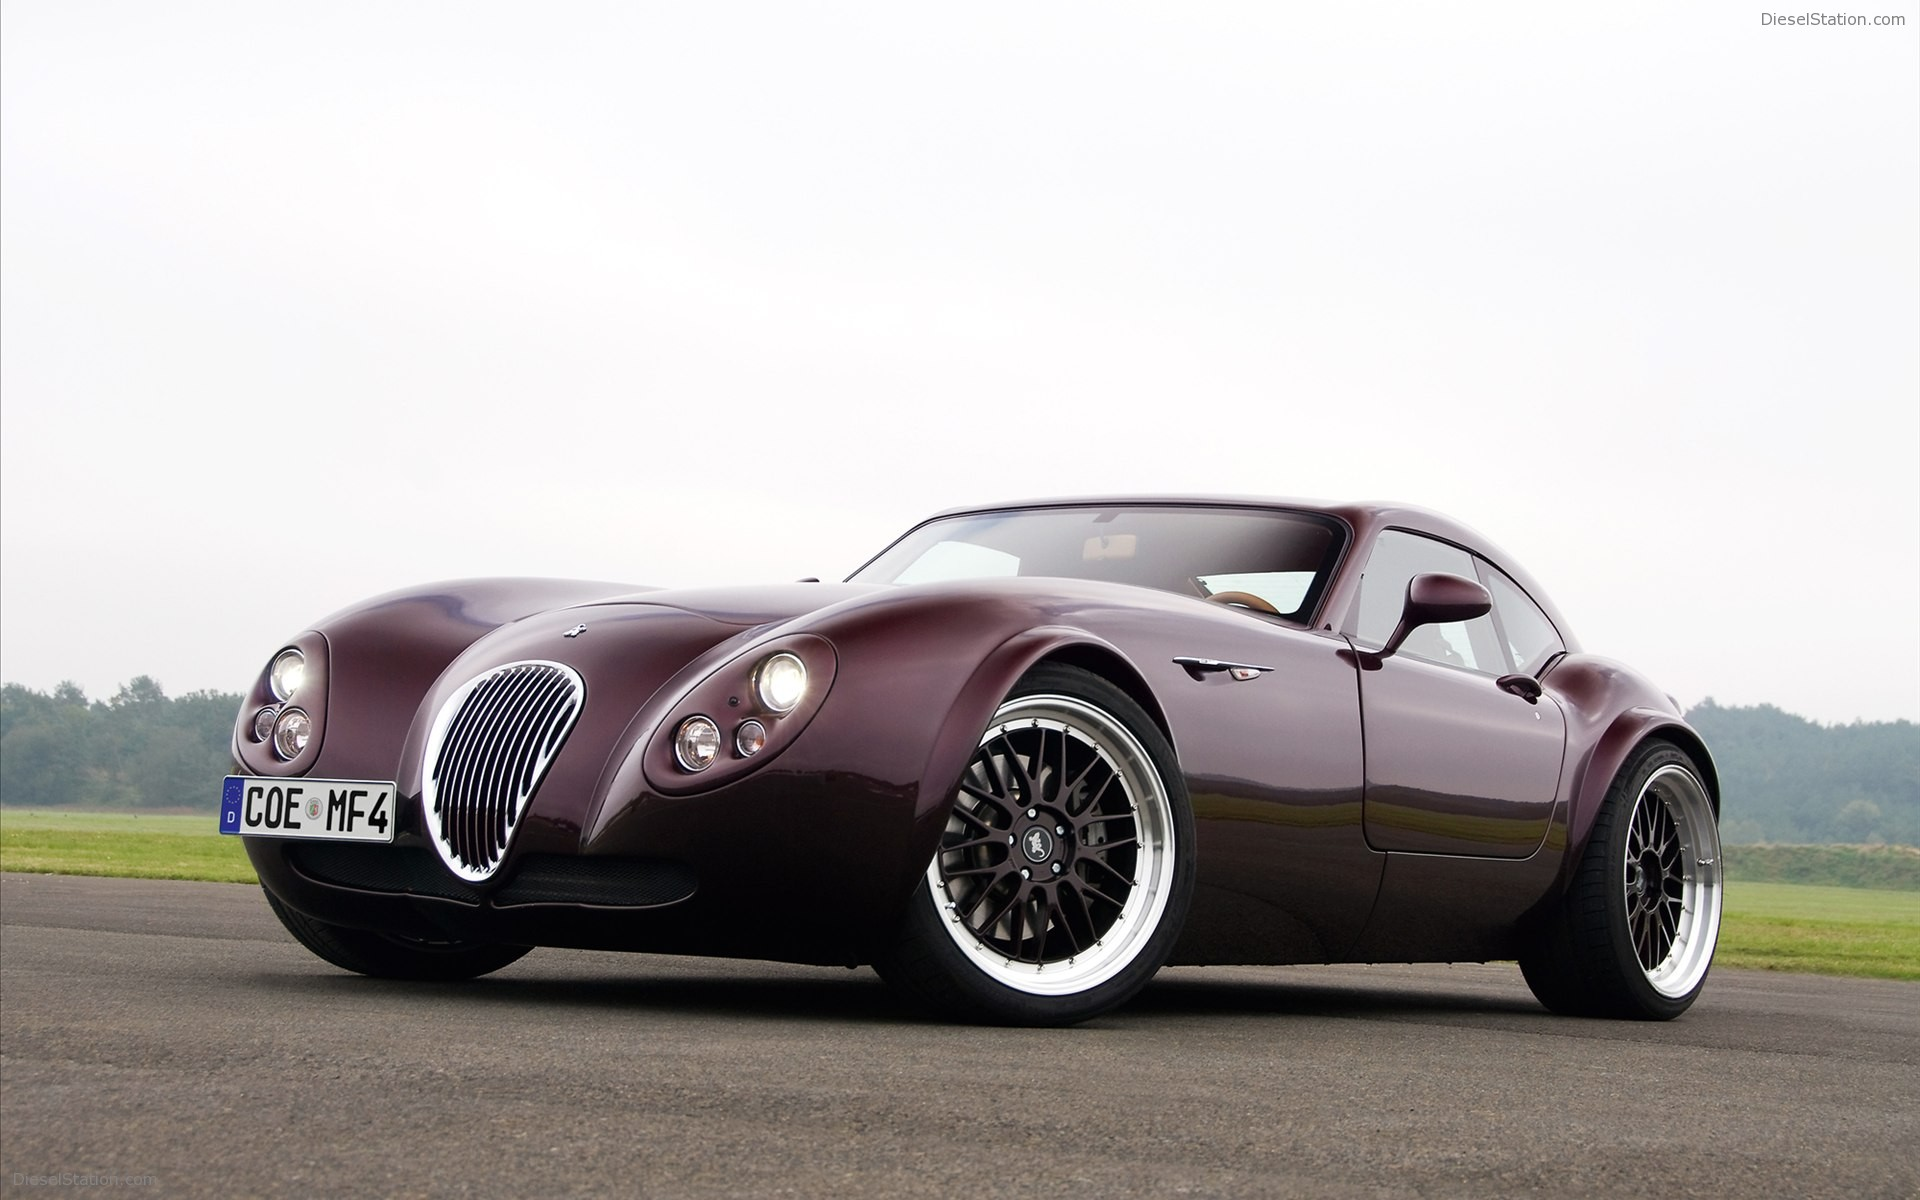 1920x1200 - Wiesmann GT MF4 Wallpapers 20